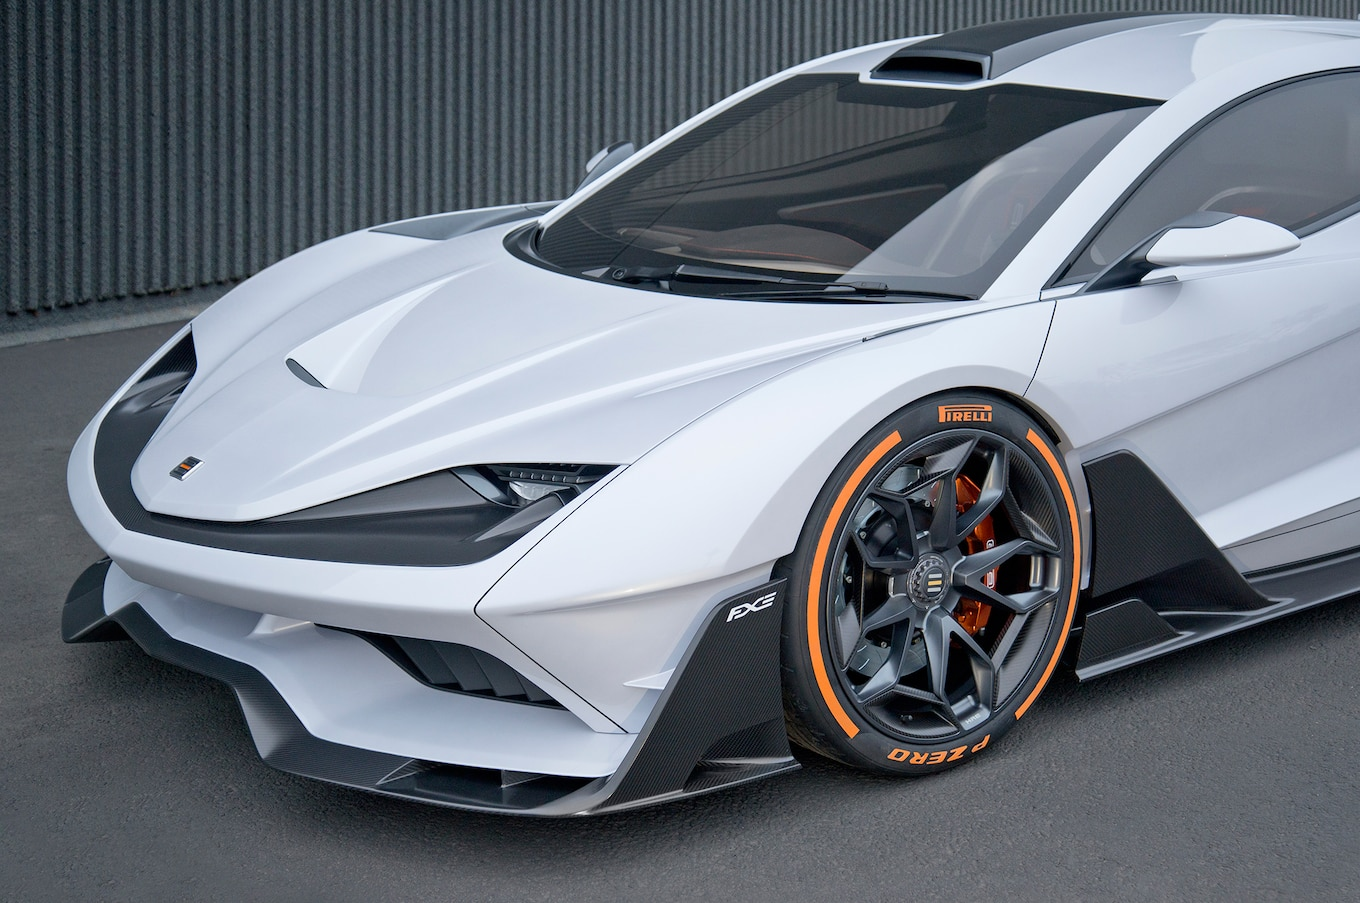 2019 Aria Fxe Hybrid Hypercar Makes Debut In L A With